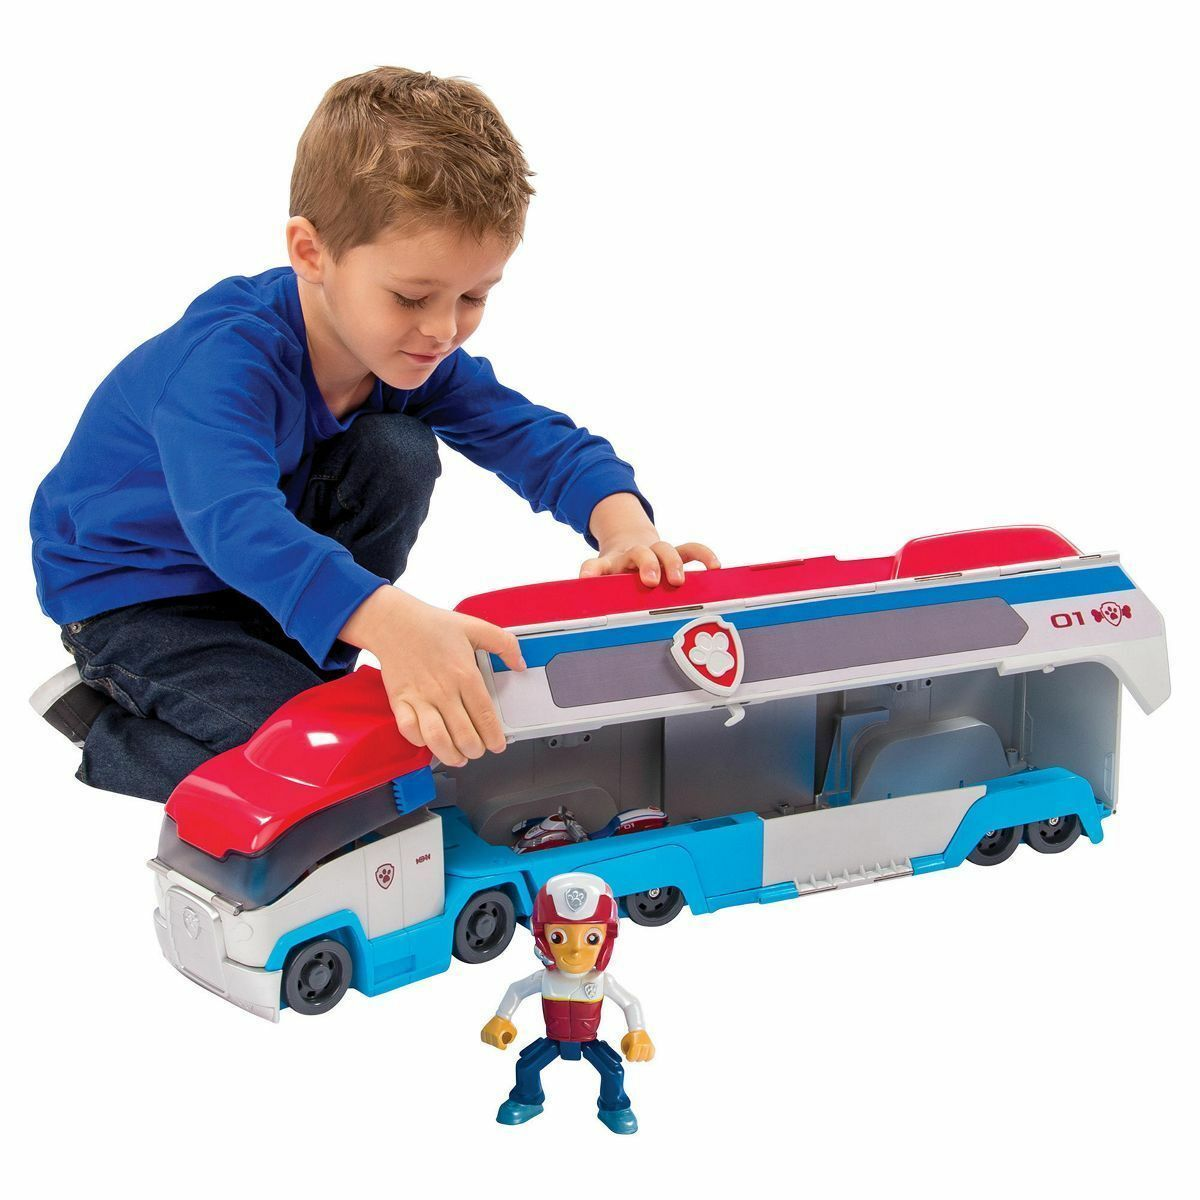 Paw Patrol Paw Patroller Rescue Transporter Vehicle Interactive  Ages 3 Years+